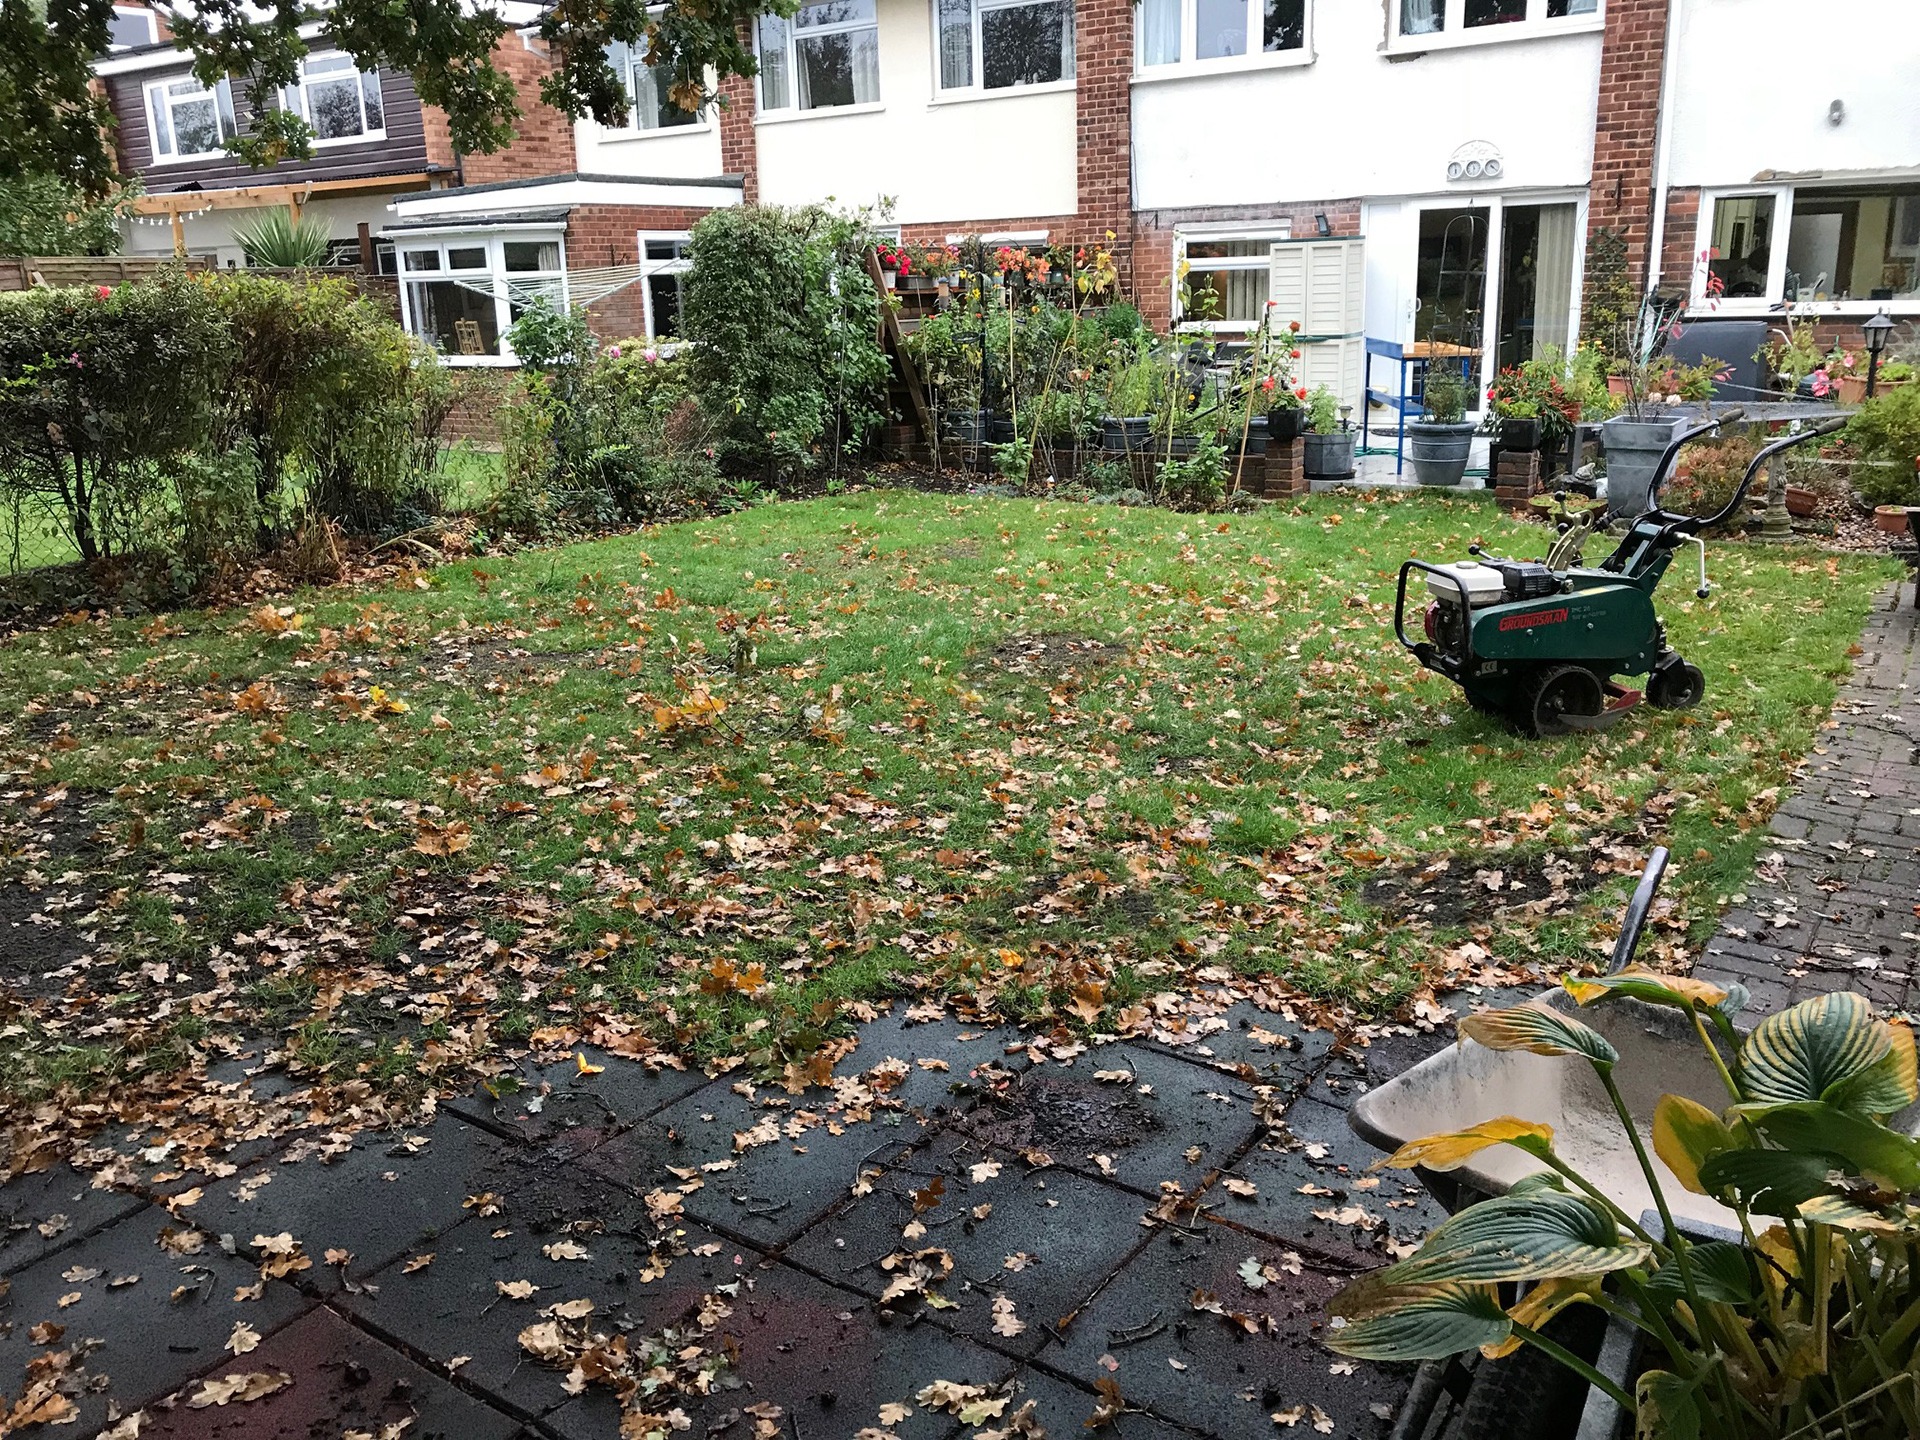 The old muddy lawn before installation begins